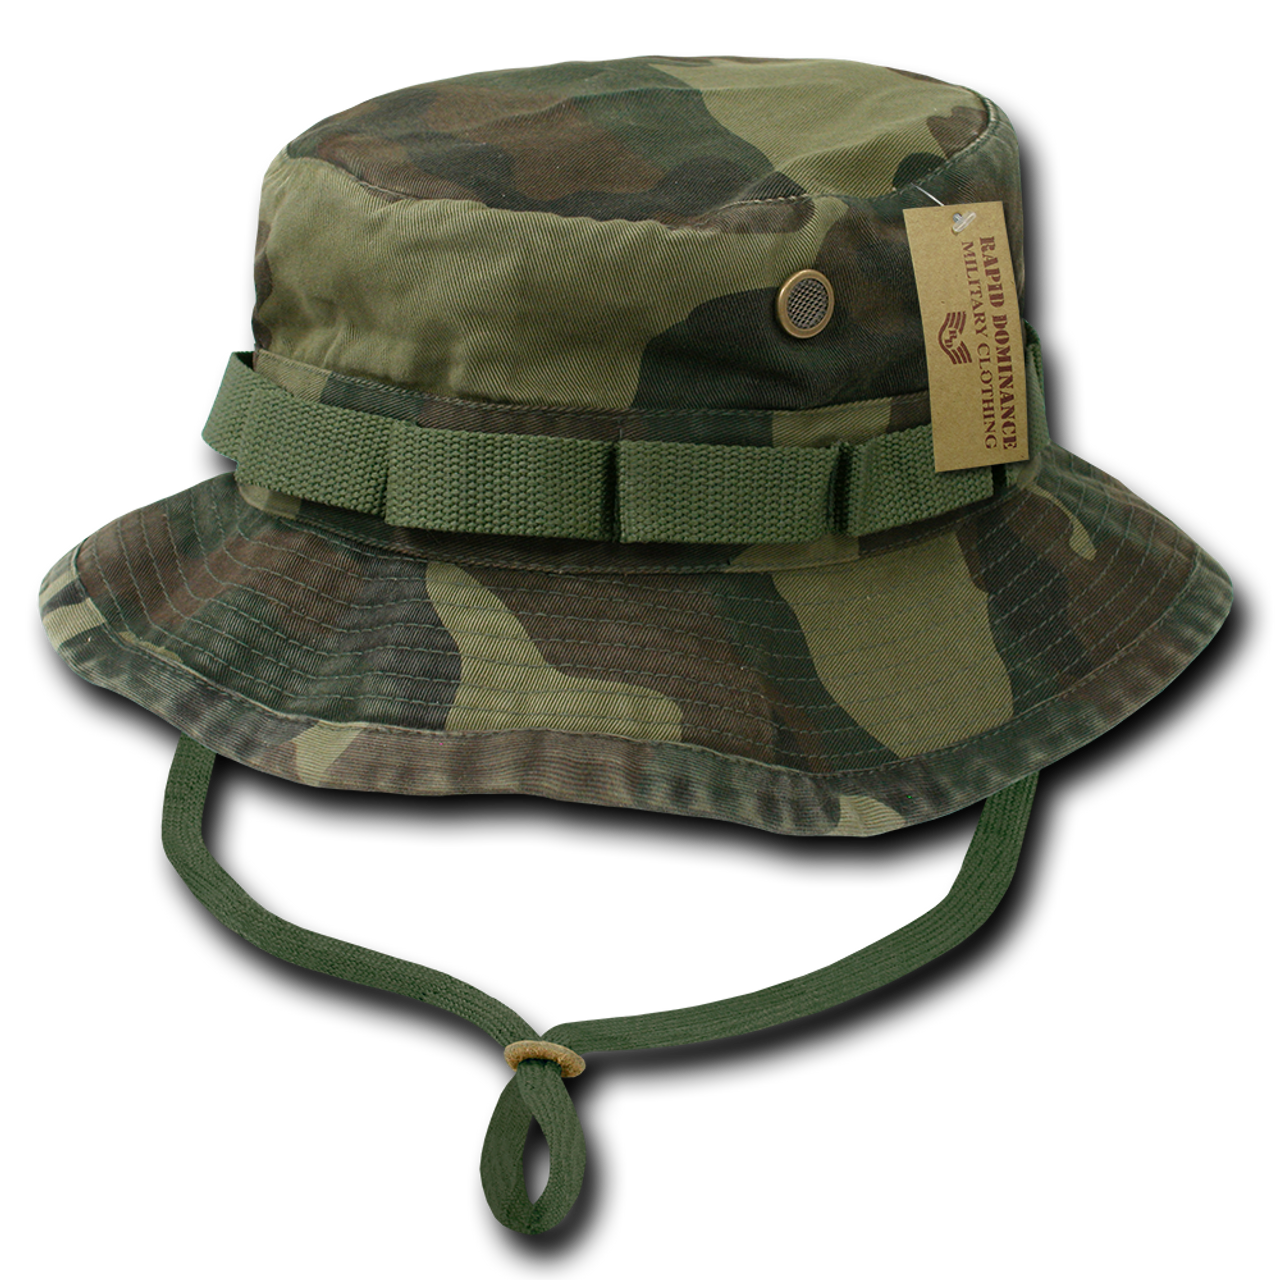 2999e5032f4 Rapid Dominance R70 Jungle Boonie Hats - Woodland Camouflage